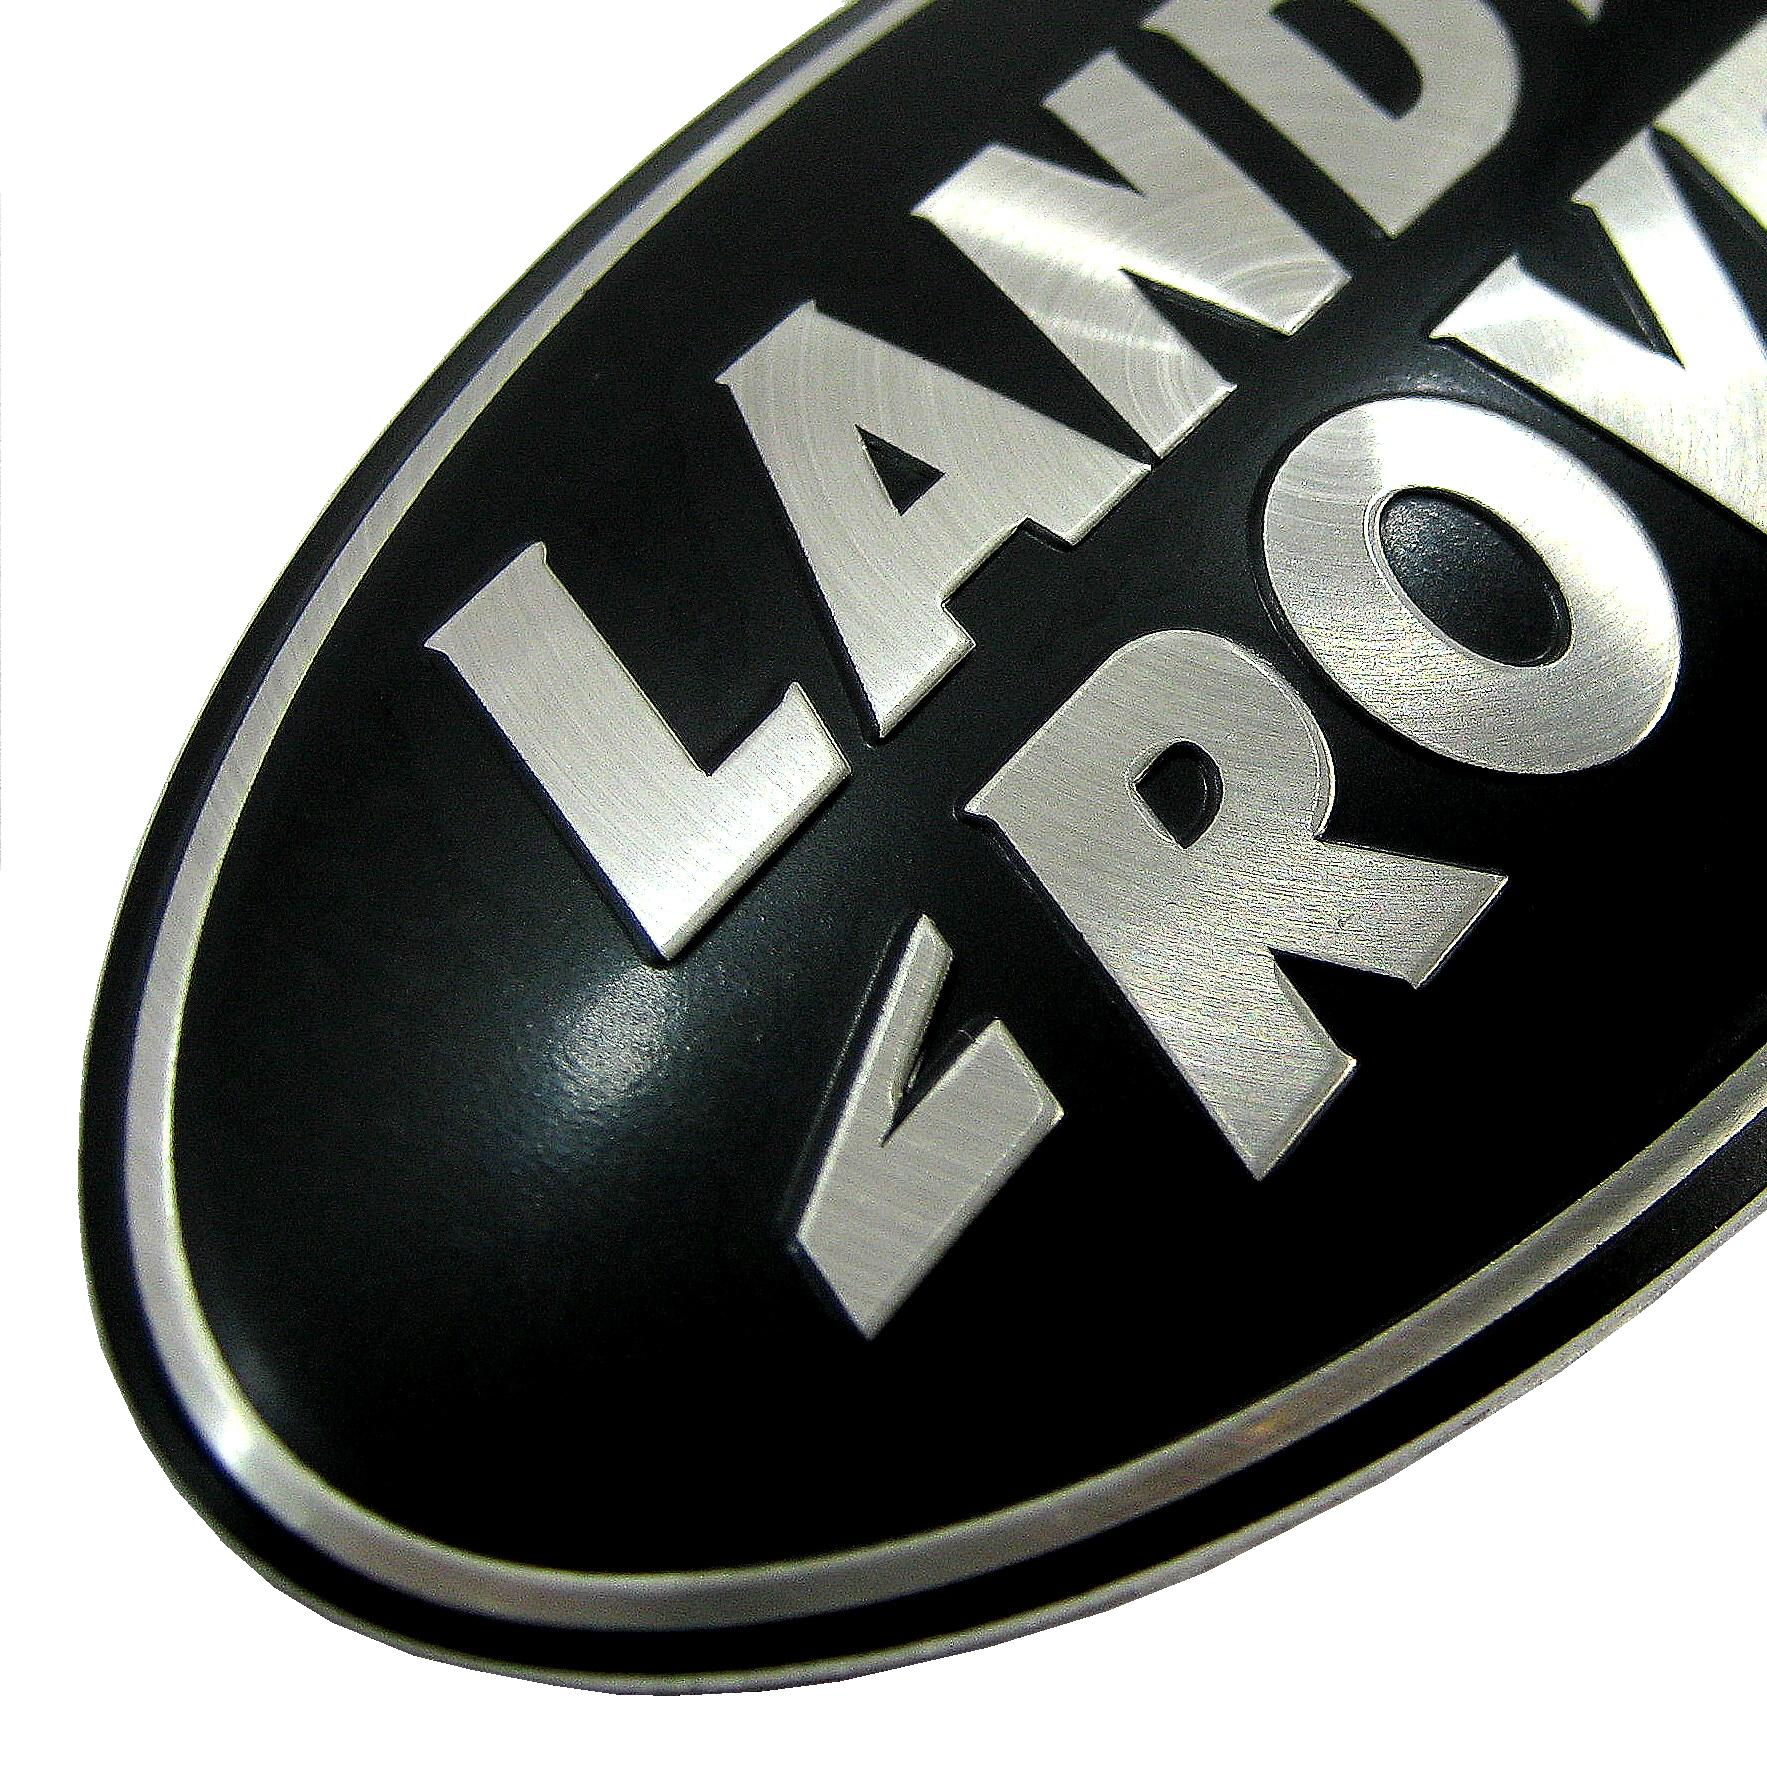 Genuine Land Rover Discovery 3 Blacksilver Front Grlle Oval Badge